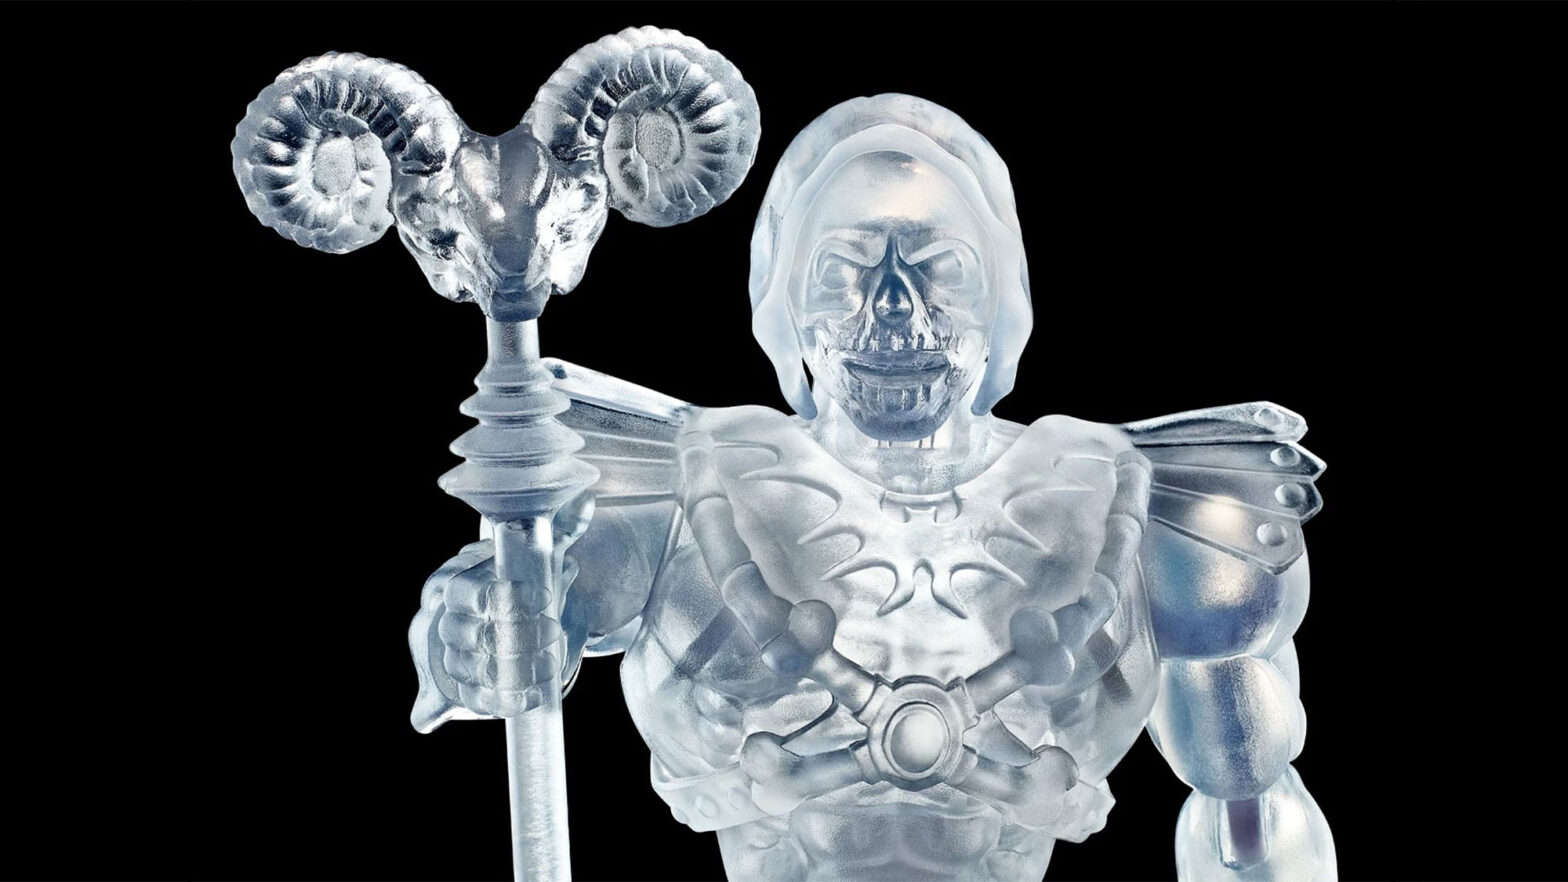 Mattel Art of Engineering Skeletor Figure